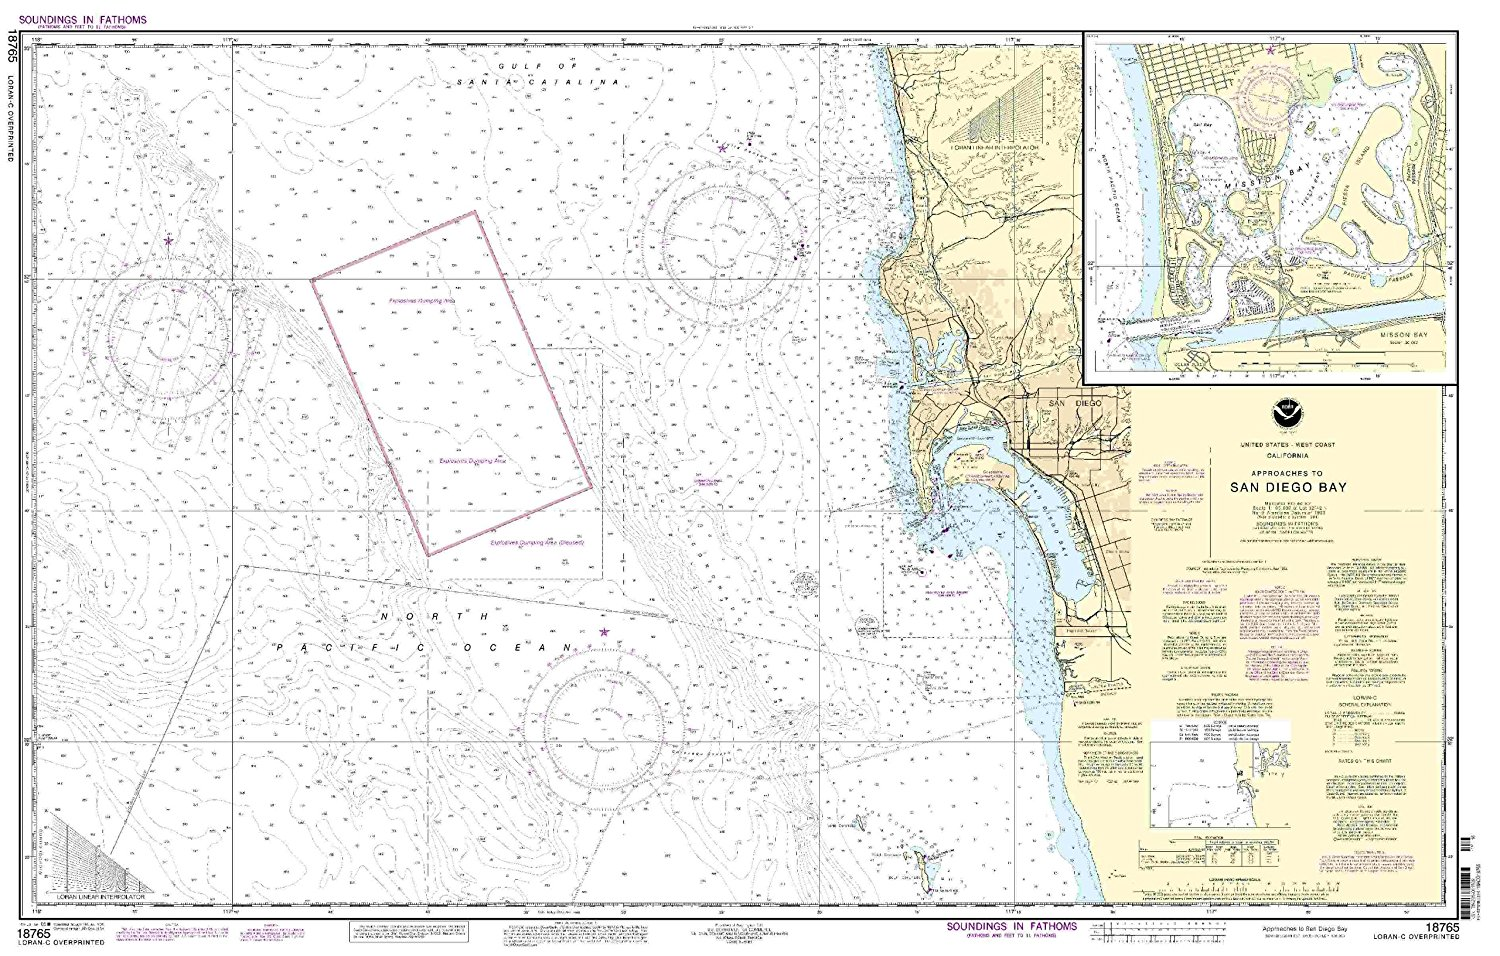 18765--Approaches to San Diego Bay, Mission Bay